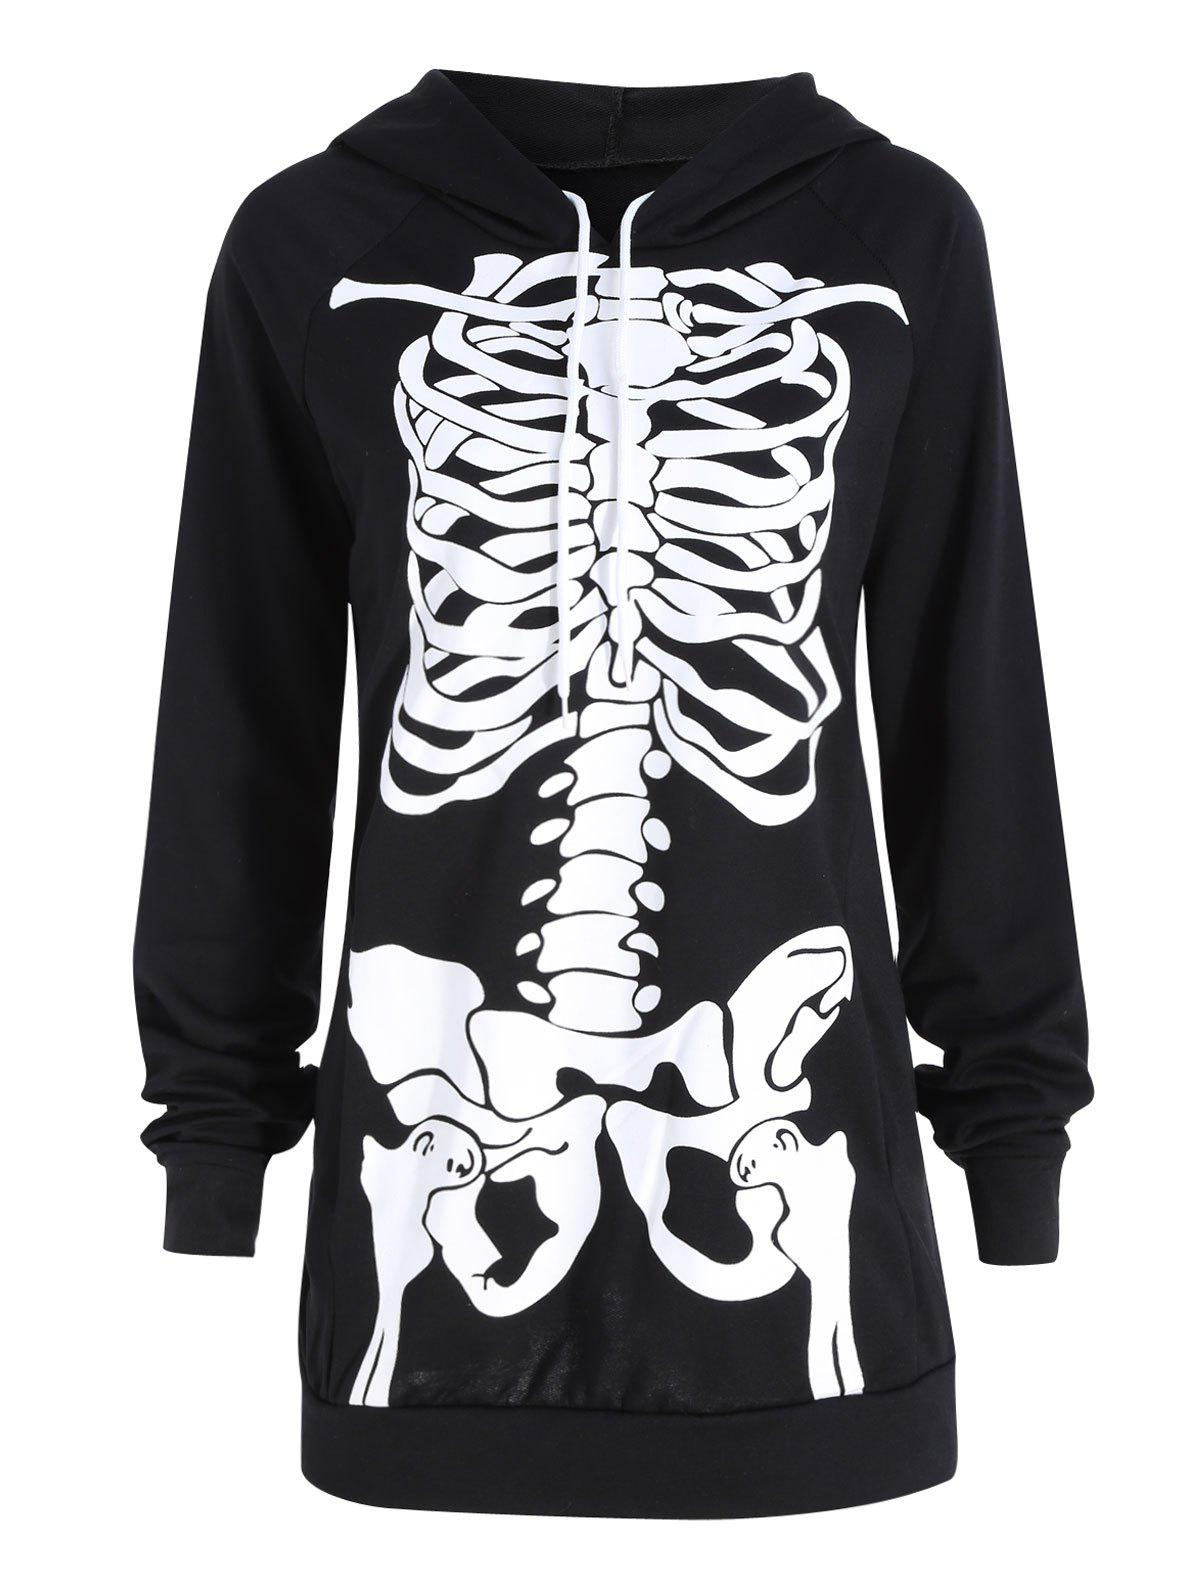 Halloween Plus Size Skeleton Printed HoodieWOMEN<br><br>Size: 5XL; Color: BLACK; Material: Cotton Blend,Polyester; Shirt Length: Regular; Sleeve Length: Full; Style: Fashion; Pattern Style: Print; Embellishment: Front Pocket; Season: Fall,Winter; Weight: 0.4100kg; Package Contents: 1 x Hoodie;